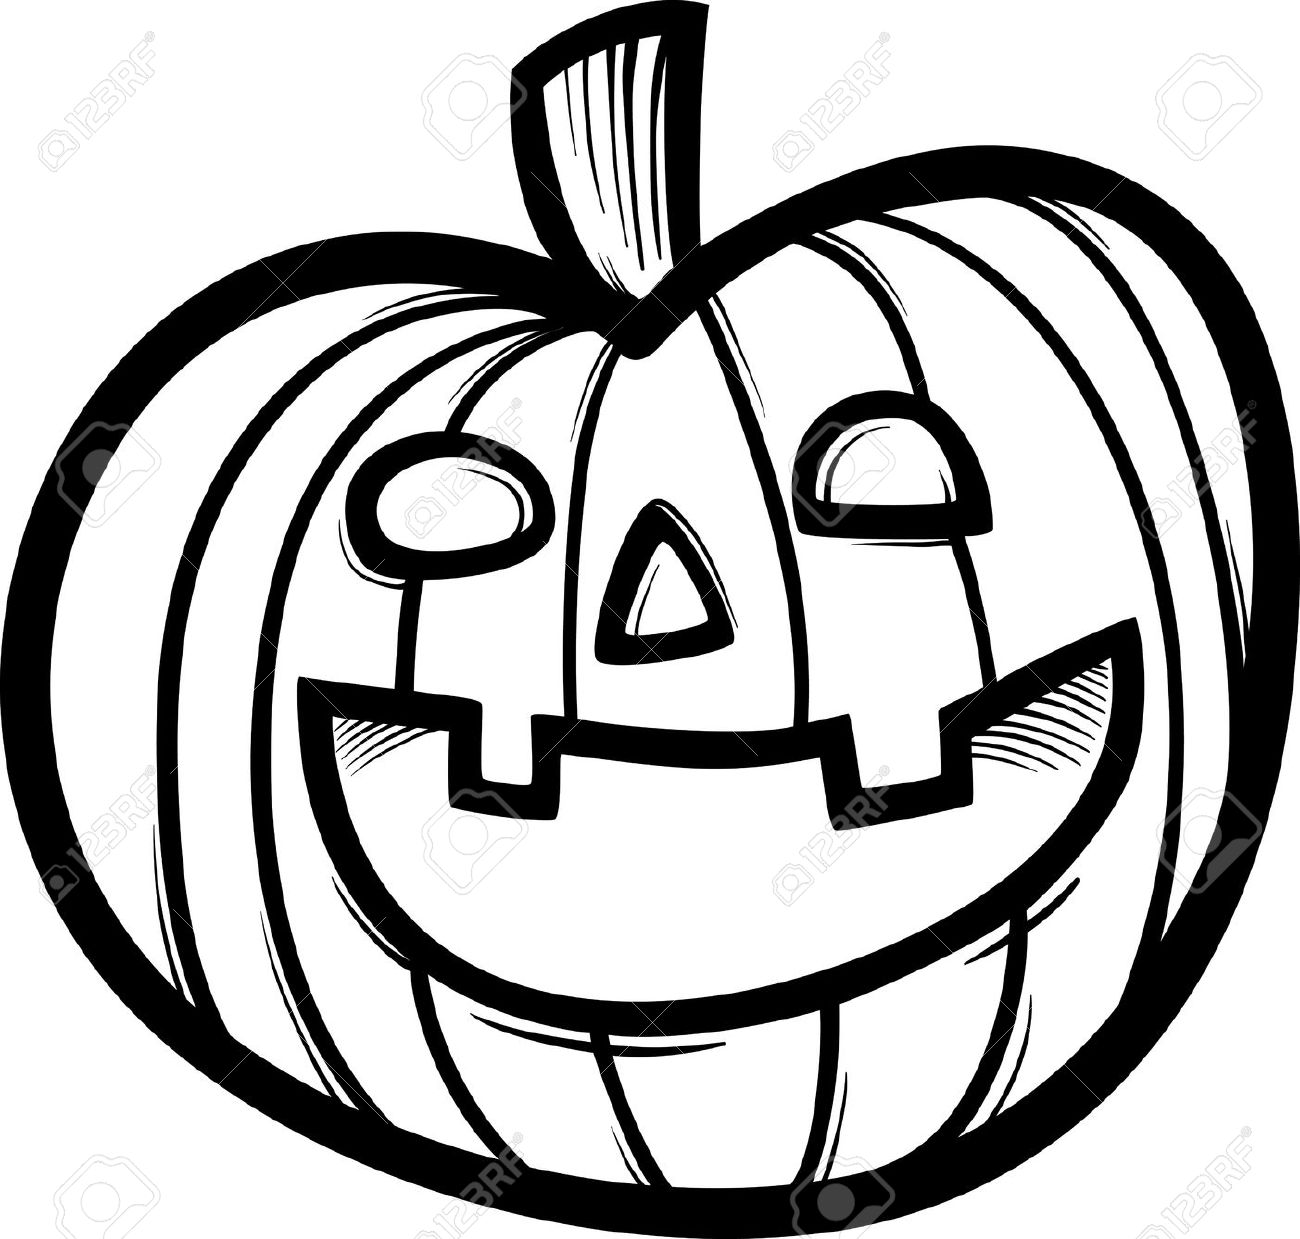 Pumpkin Clip Art at Clker.com - vector clip art online ... |Cartoon Black And White Pumkin